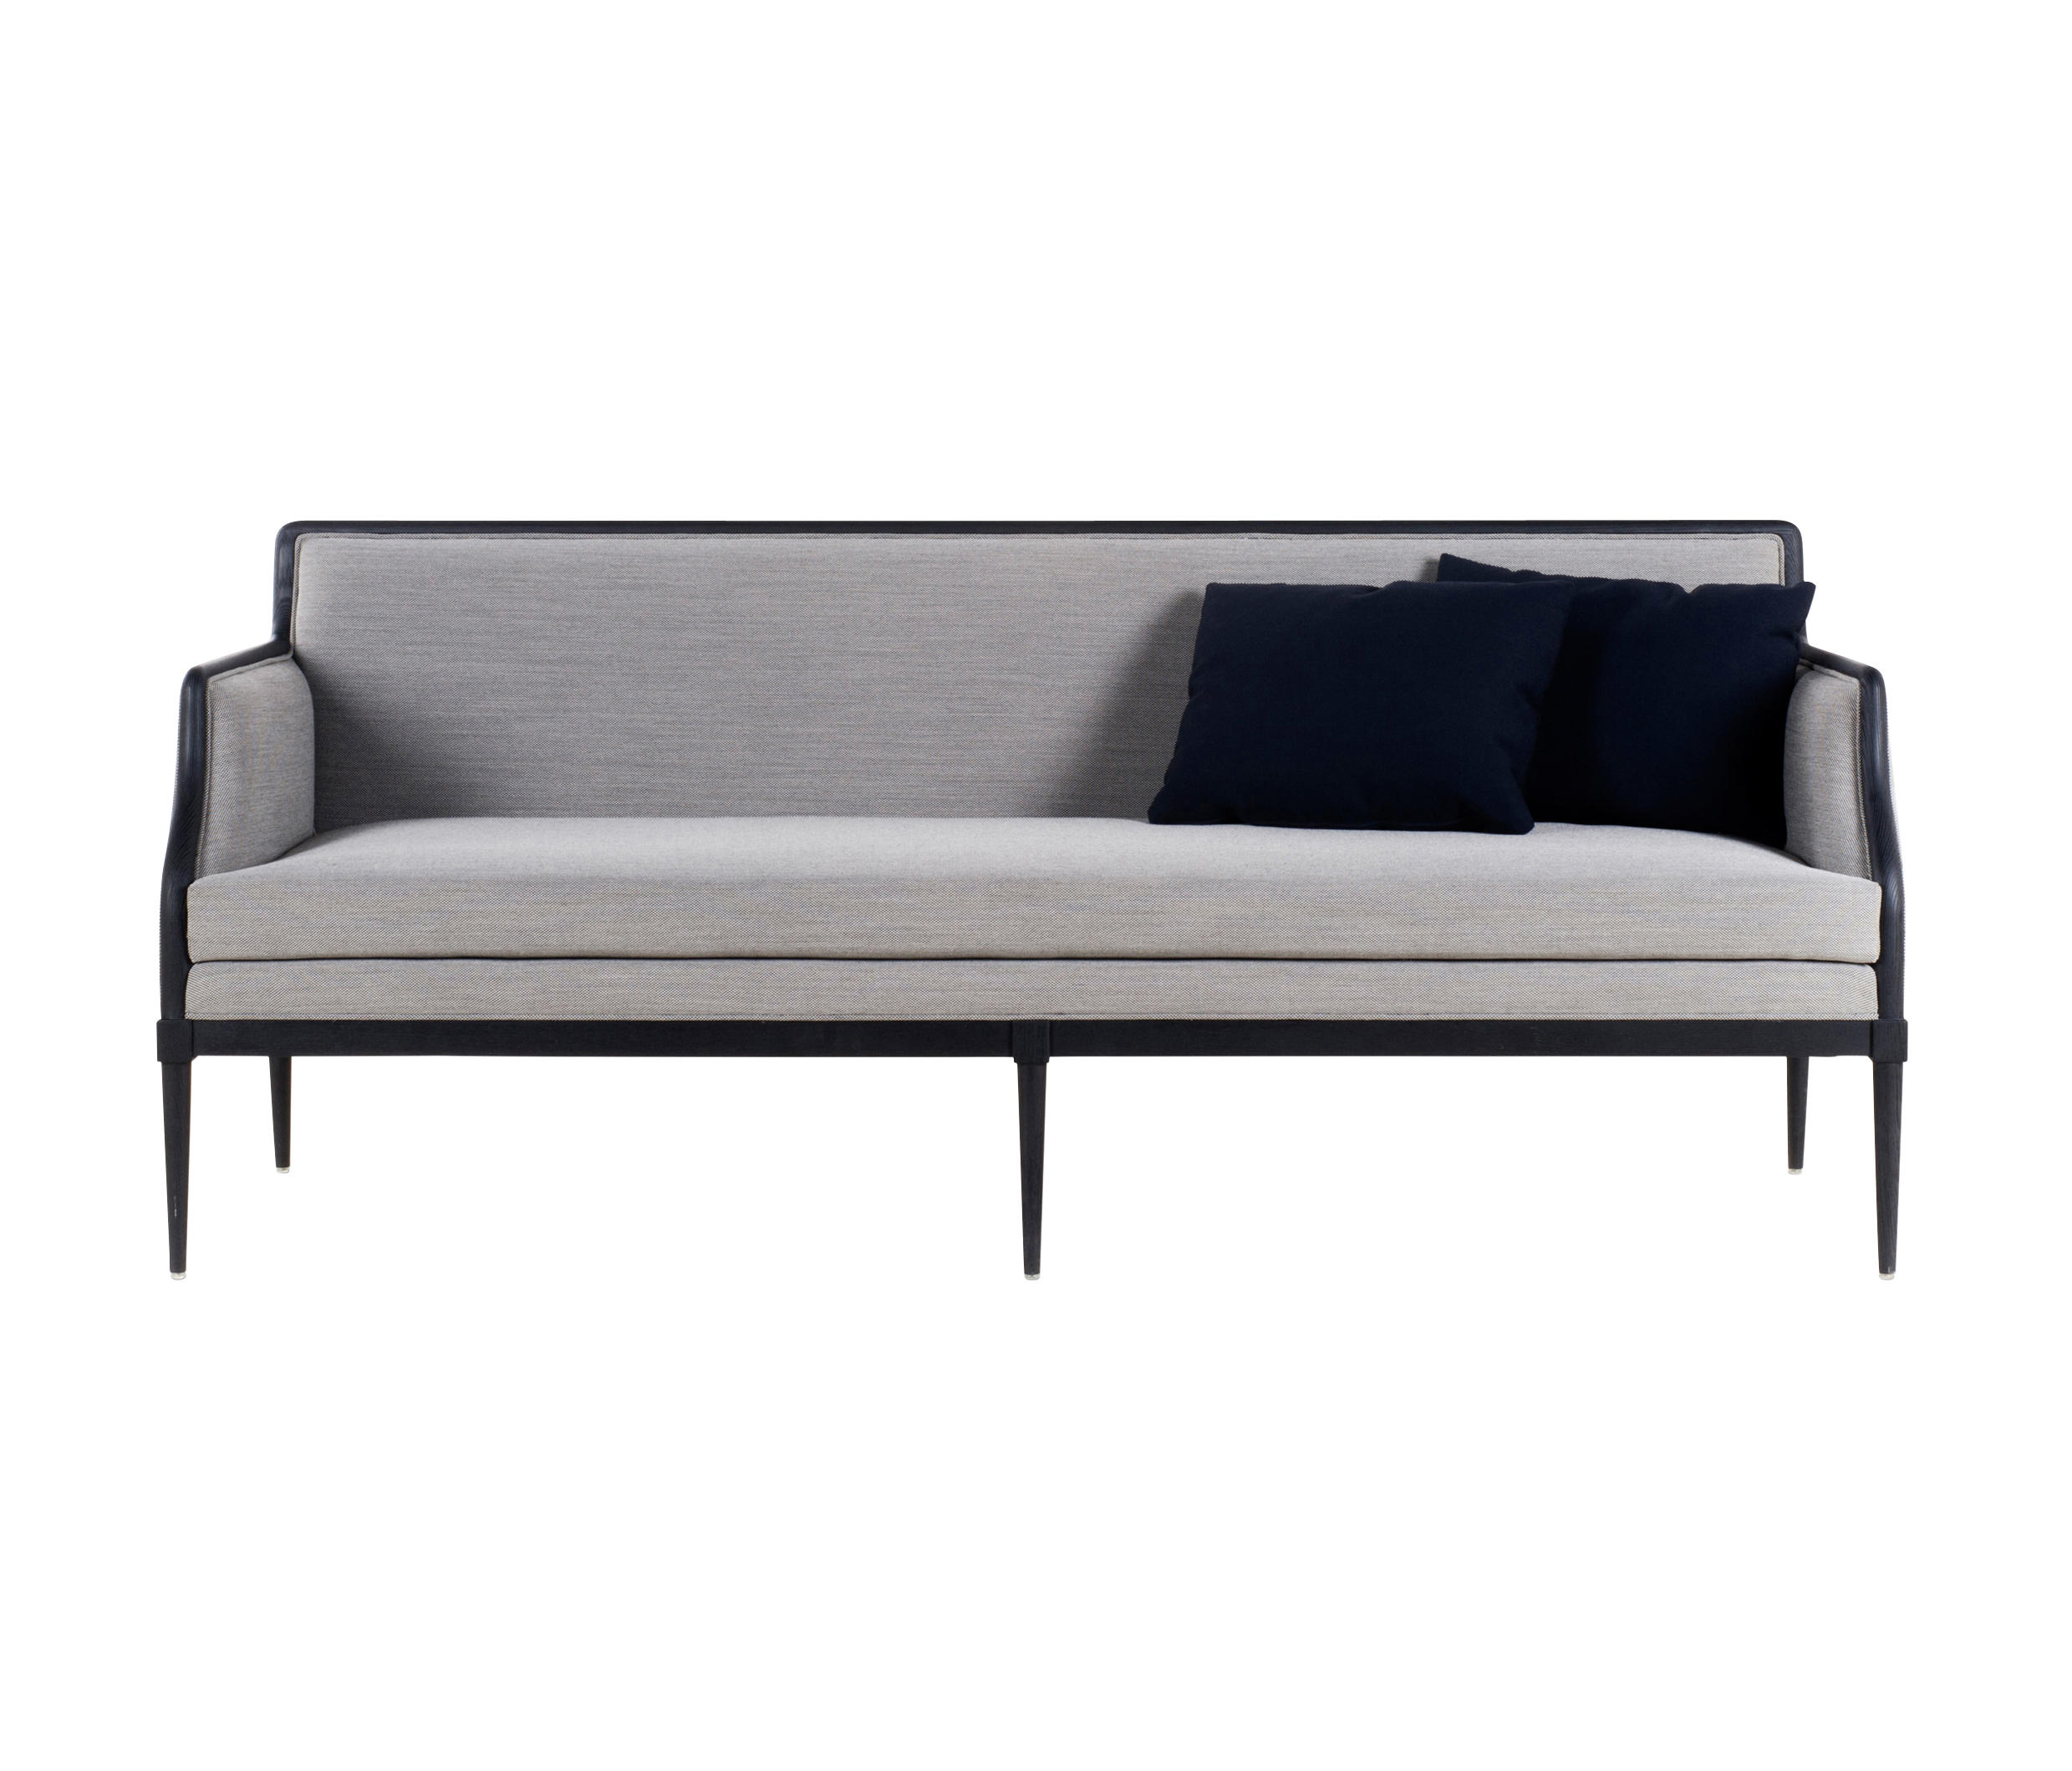 laval sofa sofas from stellar works architonic